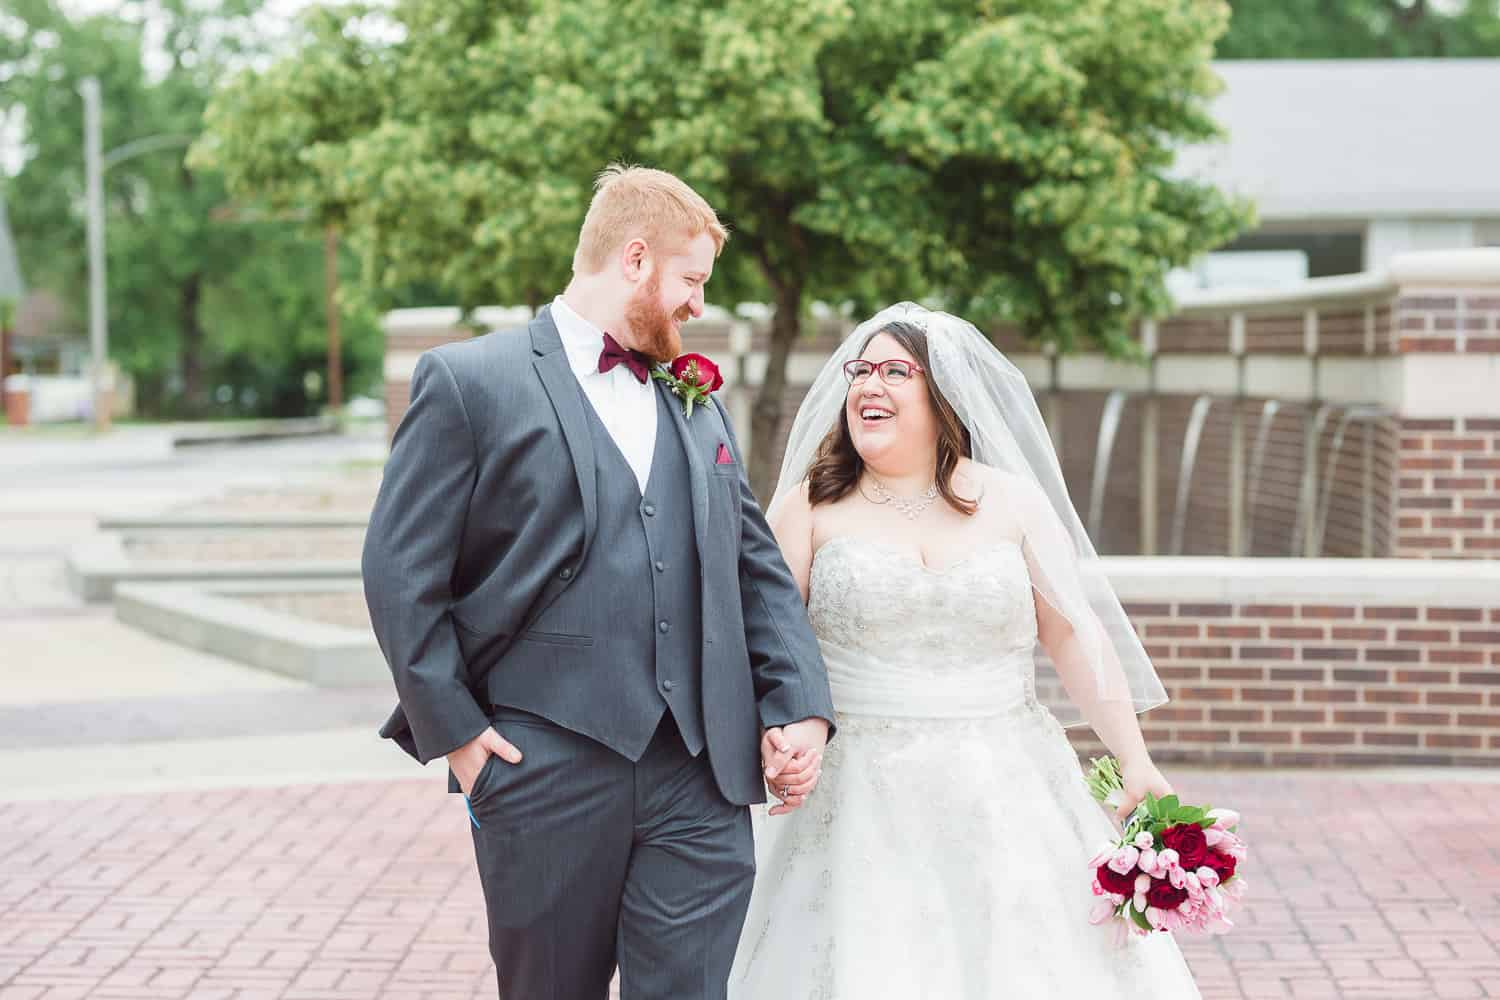 Downtown Grandview Missouri wedding portraits